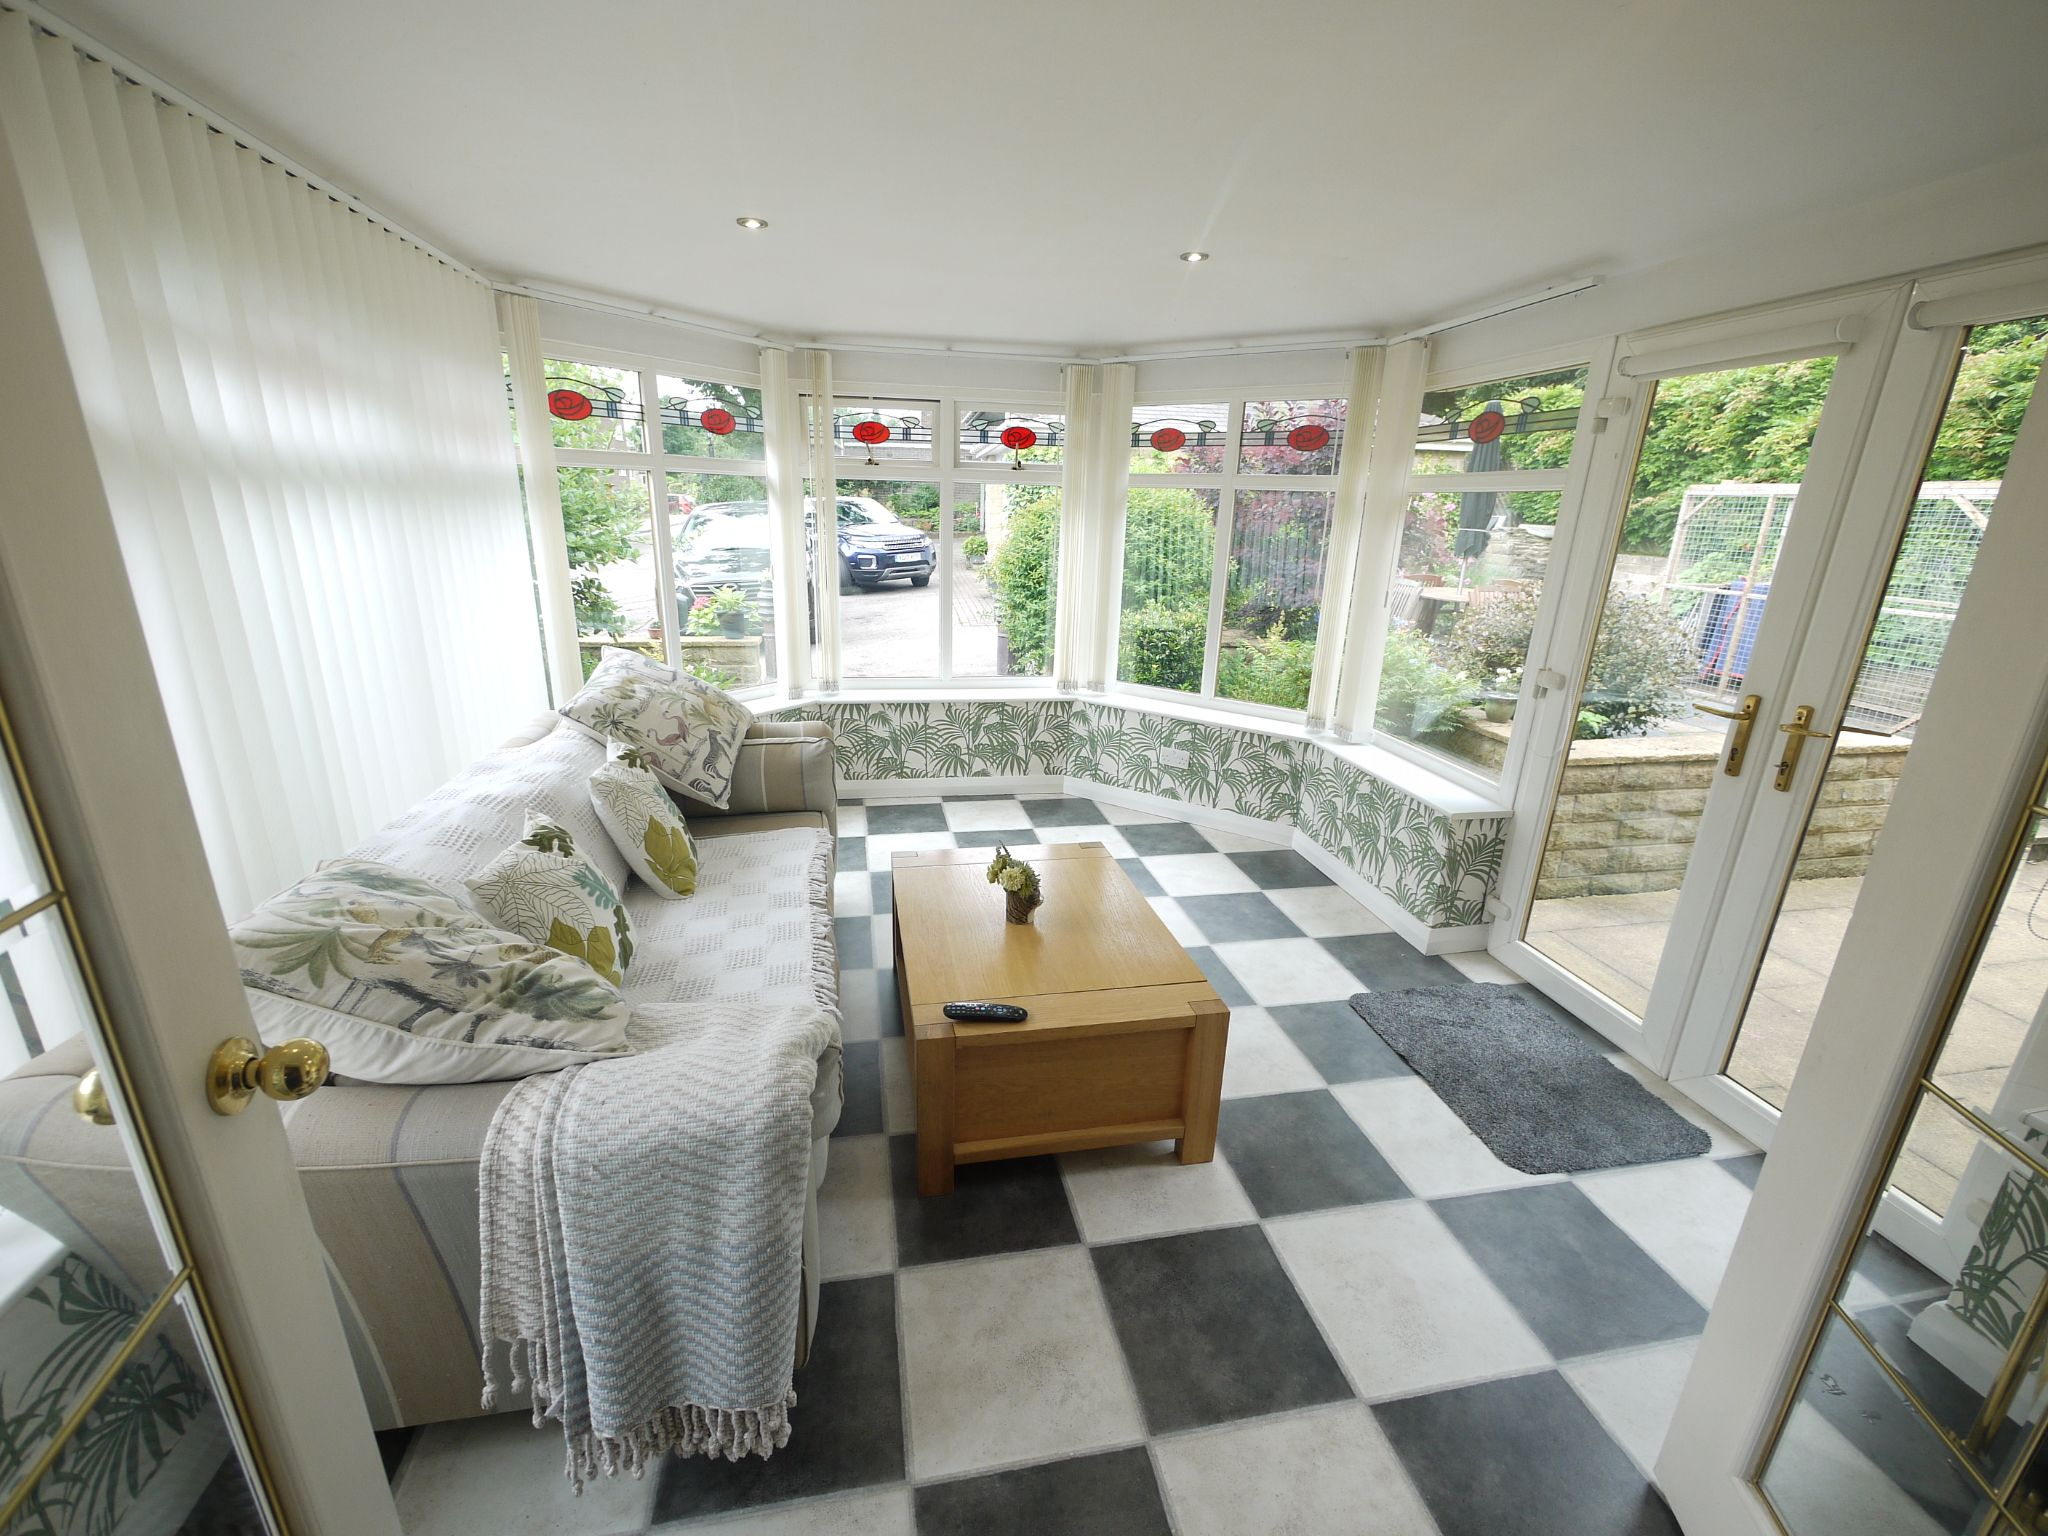 4 bedroom detached house For Sale in Brighouse - Conservatory.